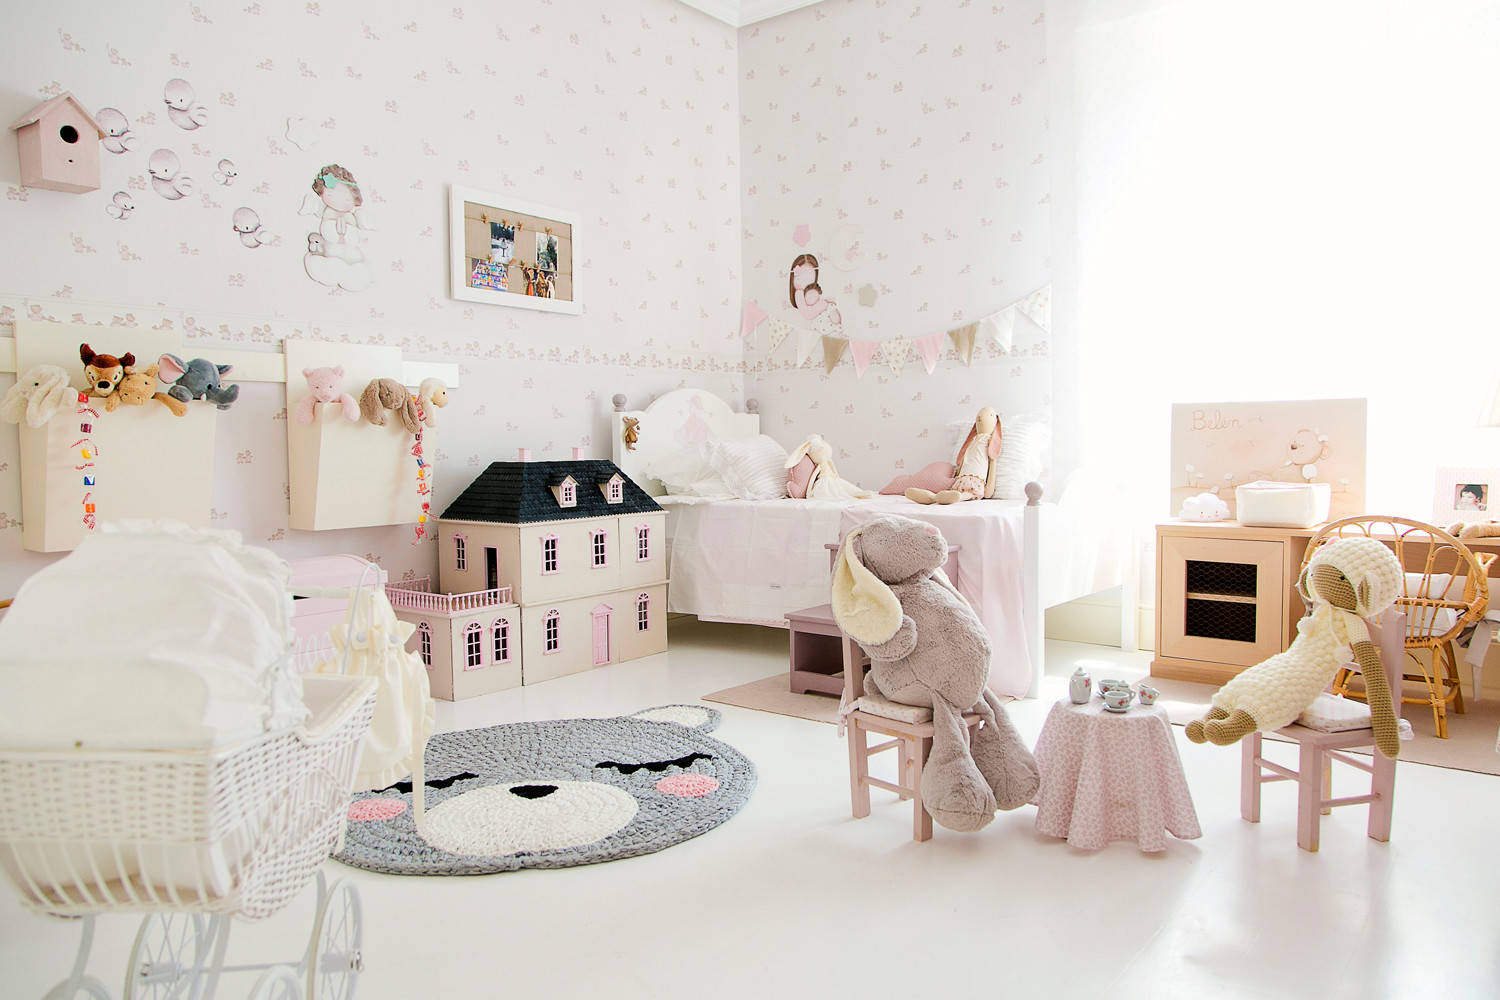 75 Beautiful Kids Room Pictures Ideas Style Shabby Chic Style July 2021 Houzz